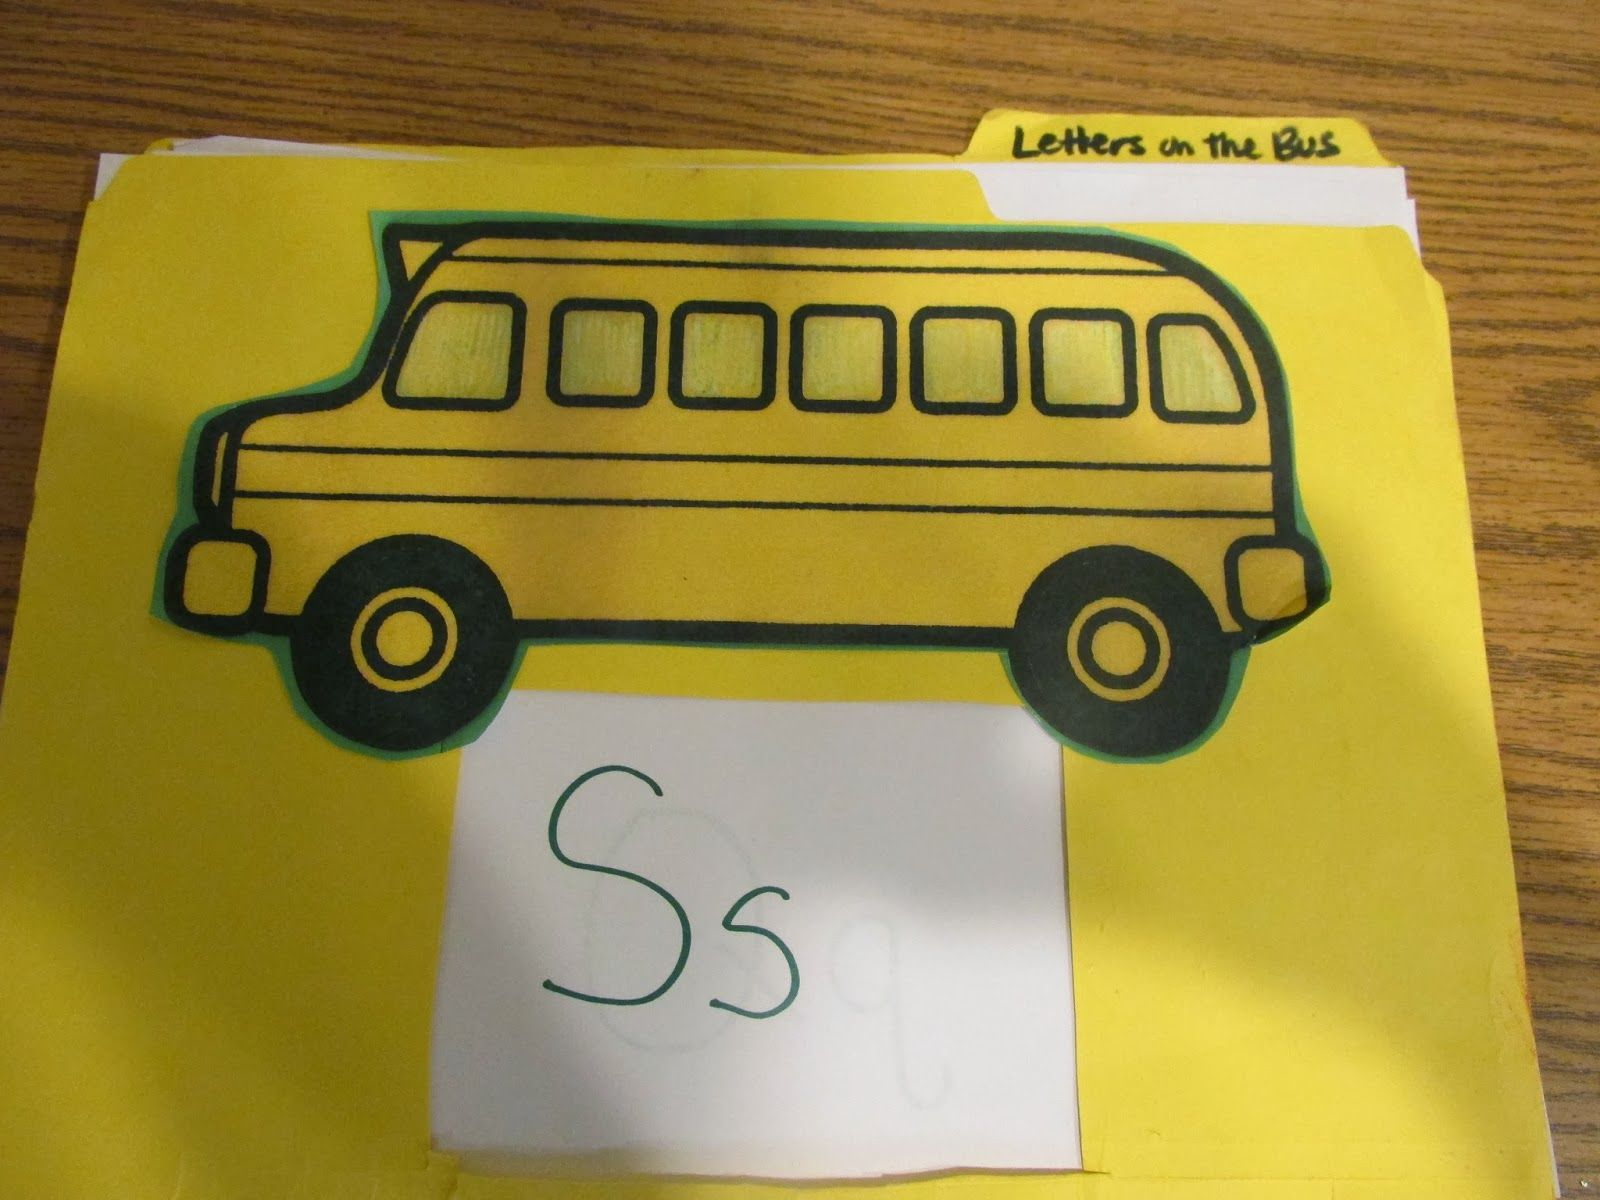 Letter review with Wheels on the bus! Use animals for